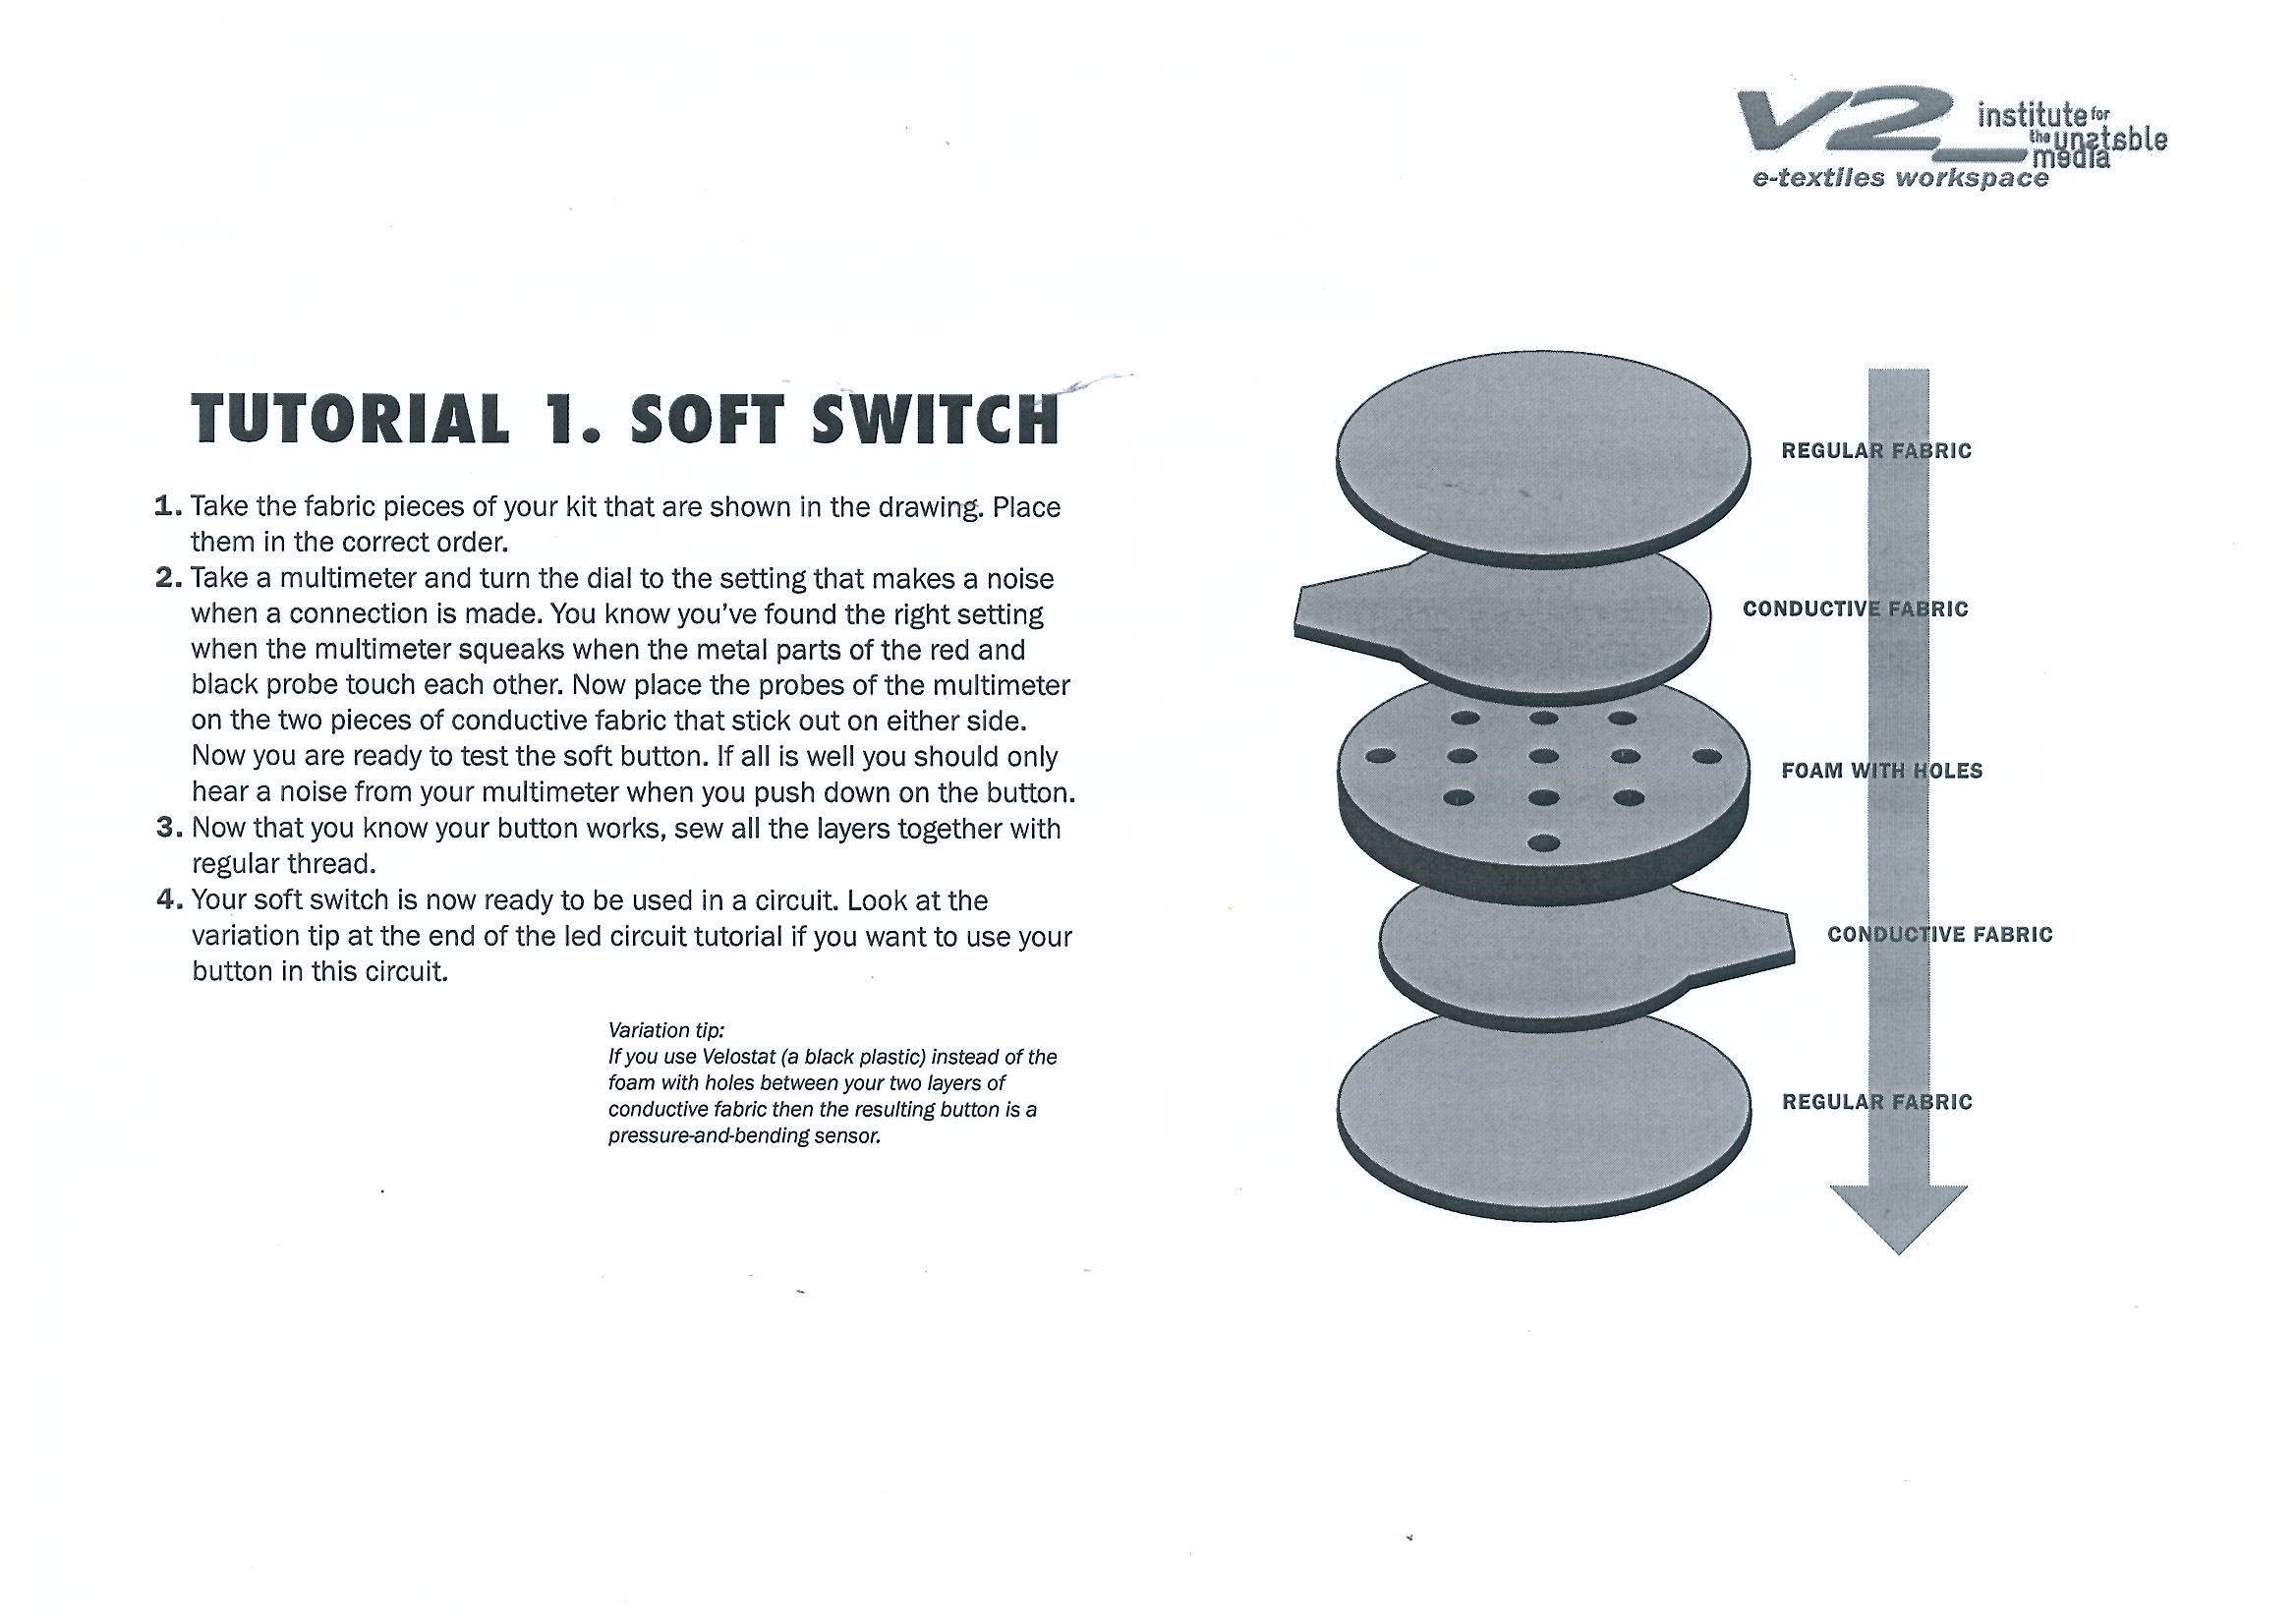 Tutorial Soft Switch — V2_Lab for the Unstable Media